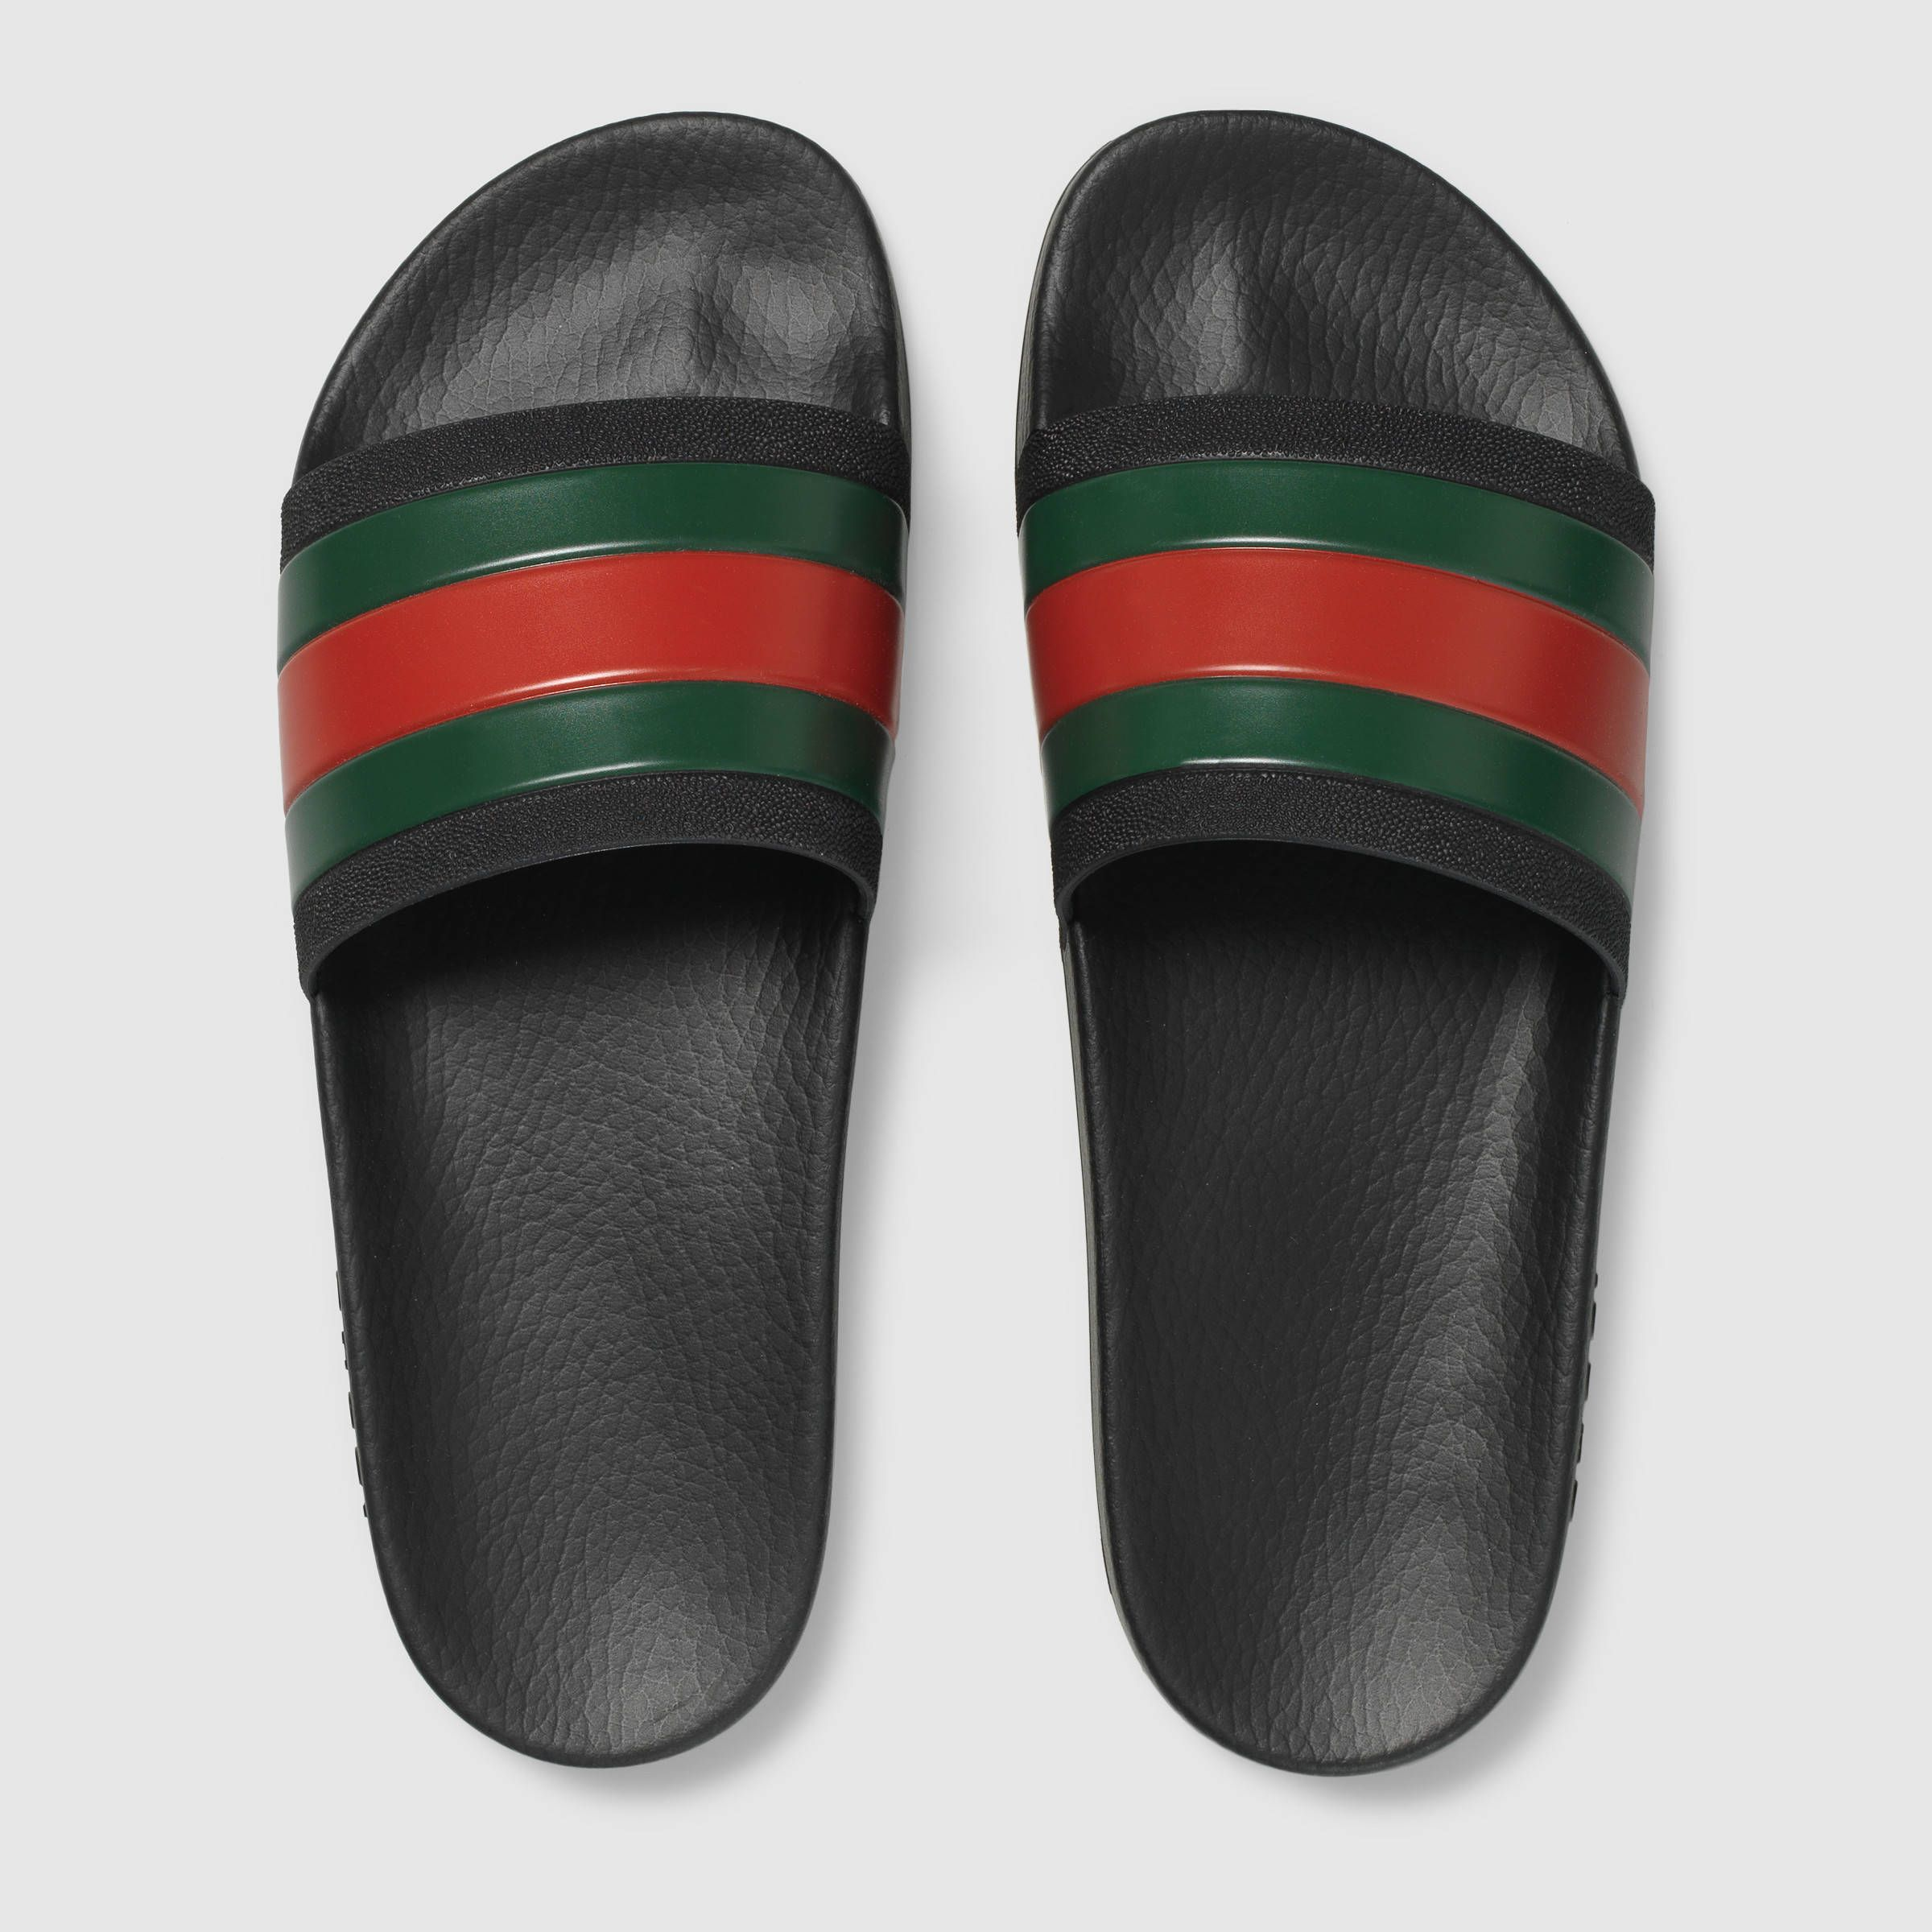 gucci shoes price list. gucci men - rubber slide sandal 308234gib101098 shoes price list d